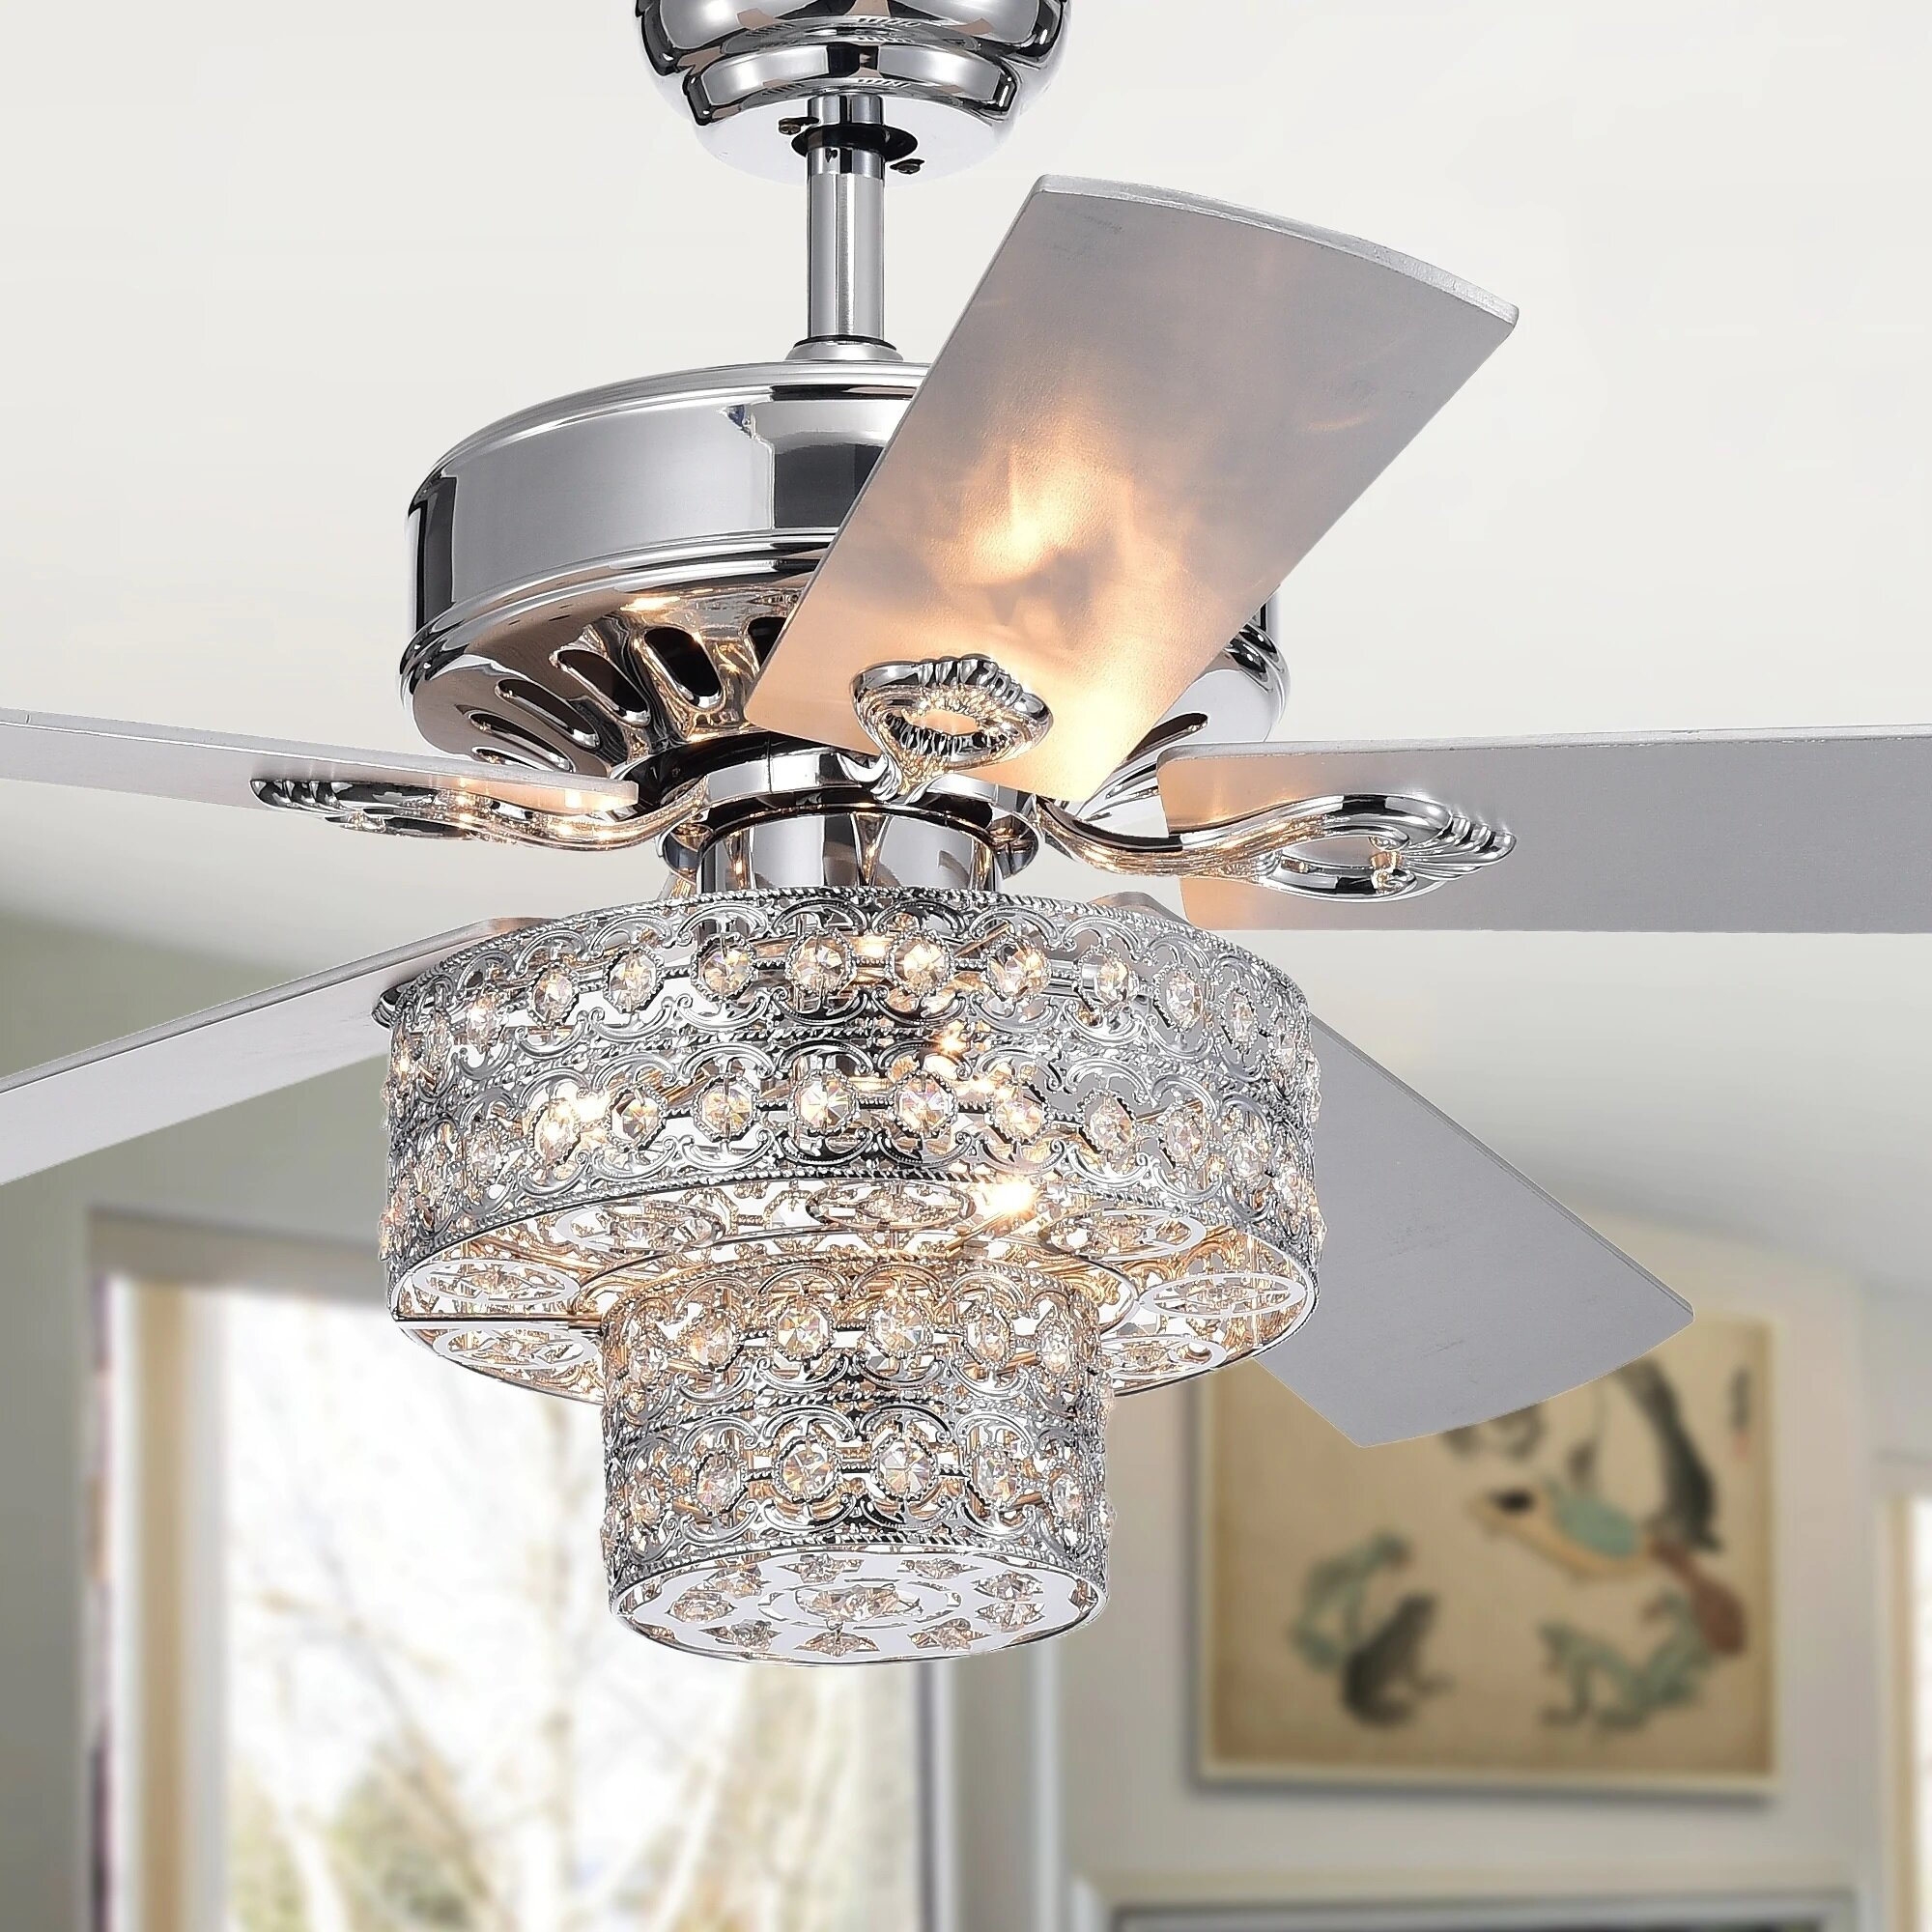 Rosdorf park 52 princess chandelier 5 blade ceiling fan with remote wayfair